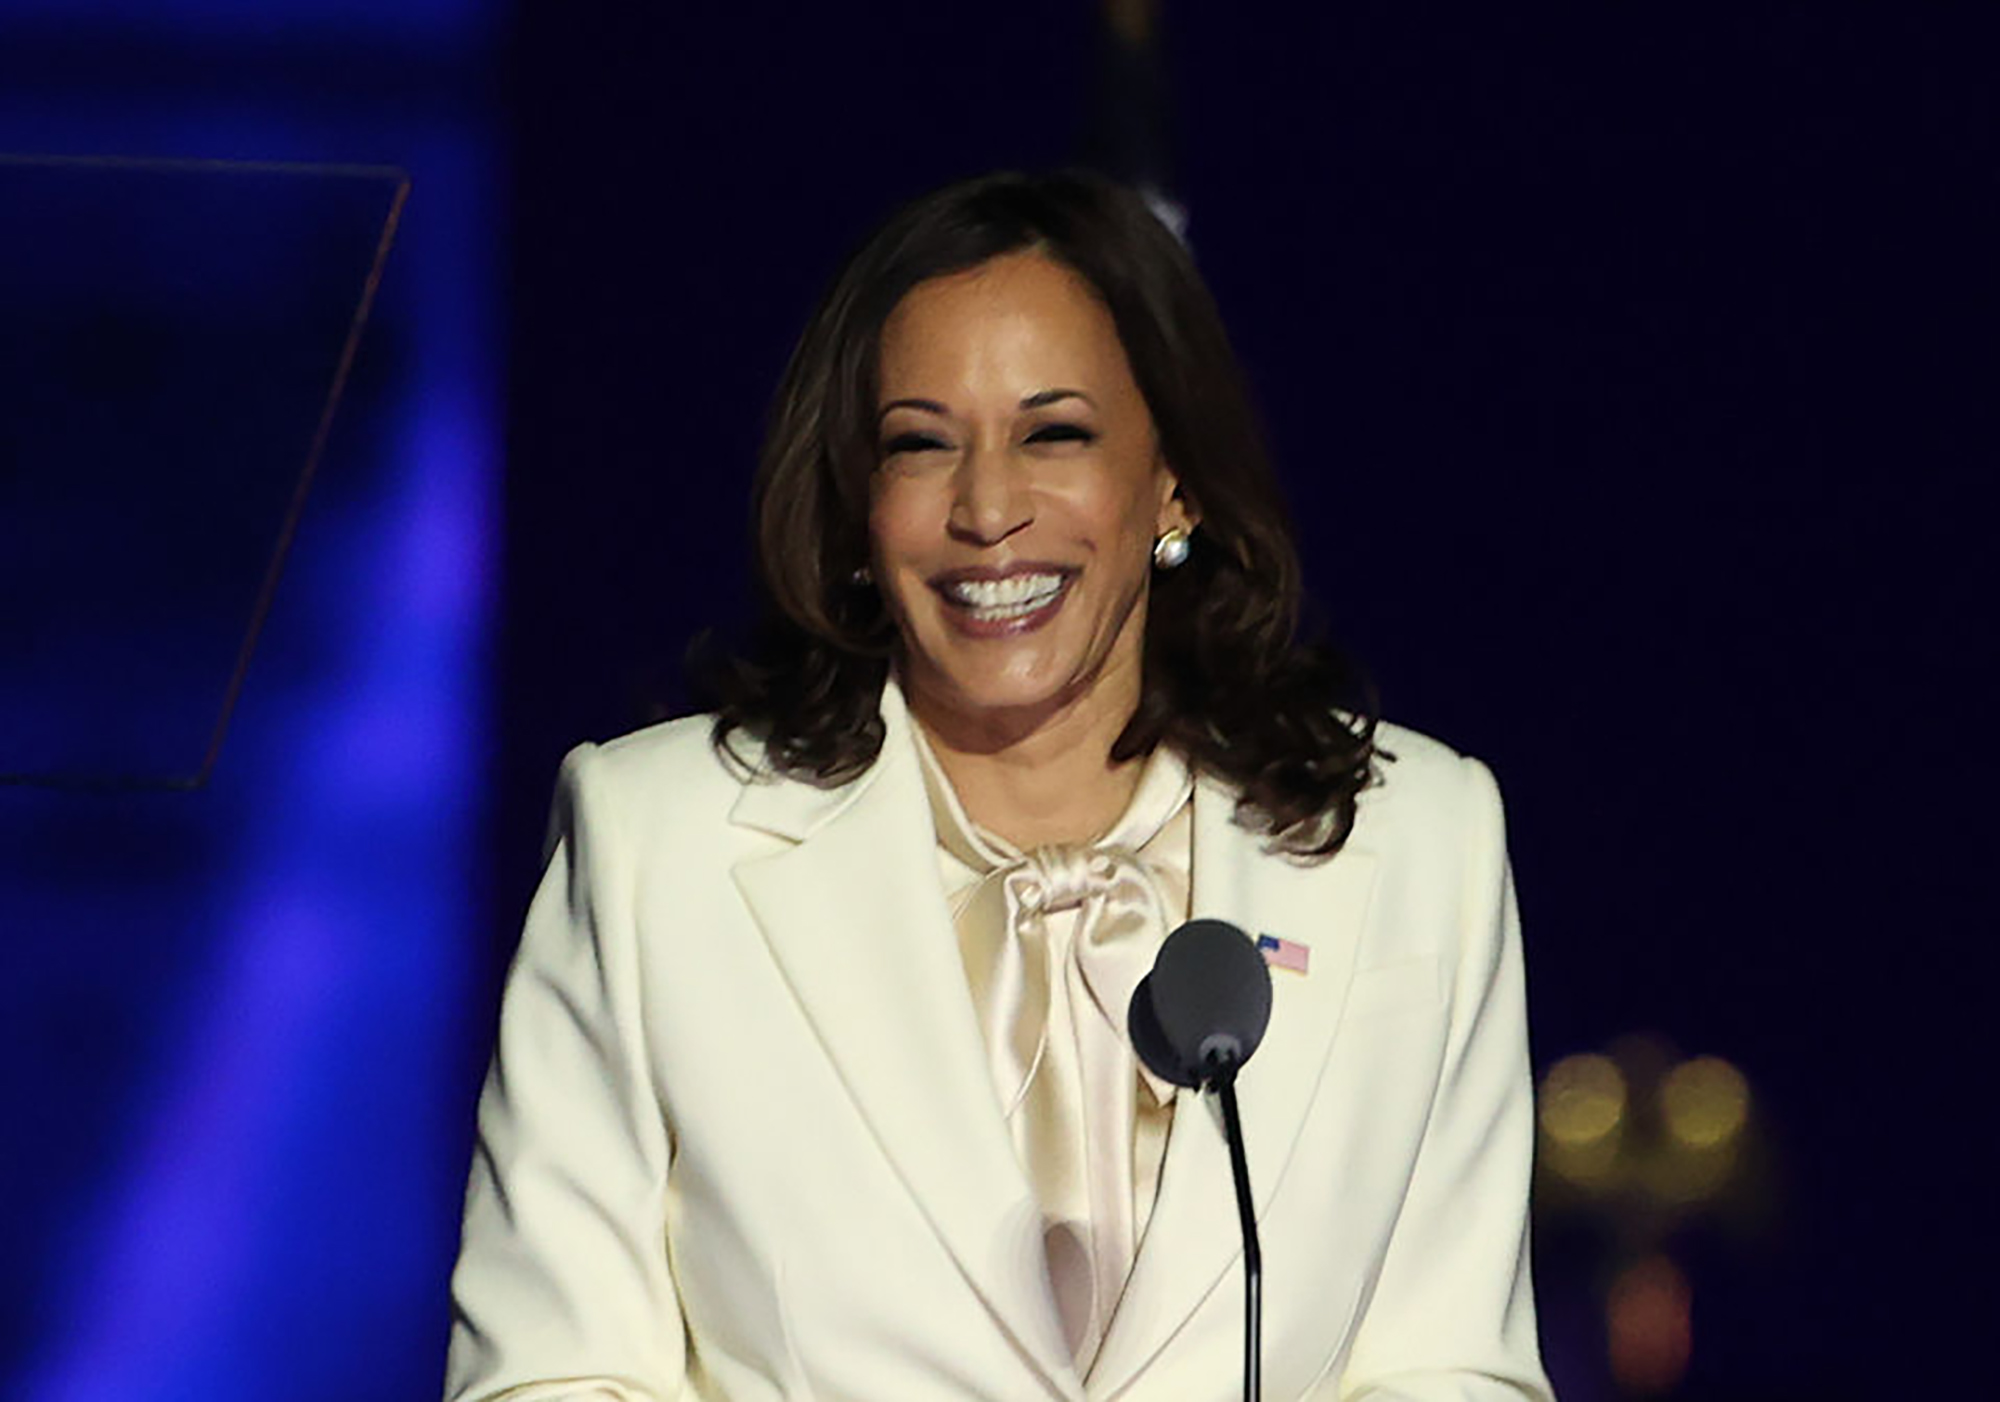 Vice President-elect Kamala Harris takes the stage at the Chase Center Nov. 7, 2020 in Wilmington, Del.